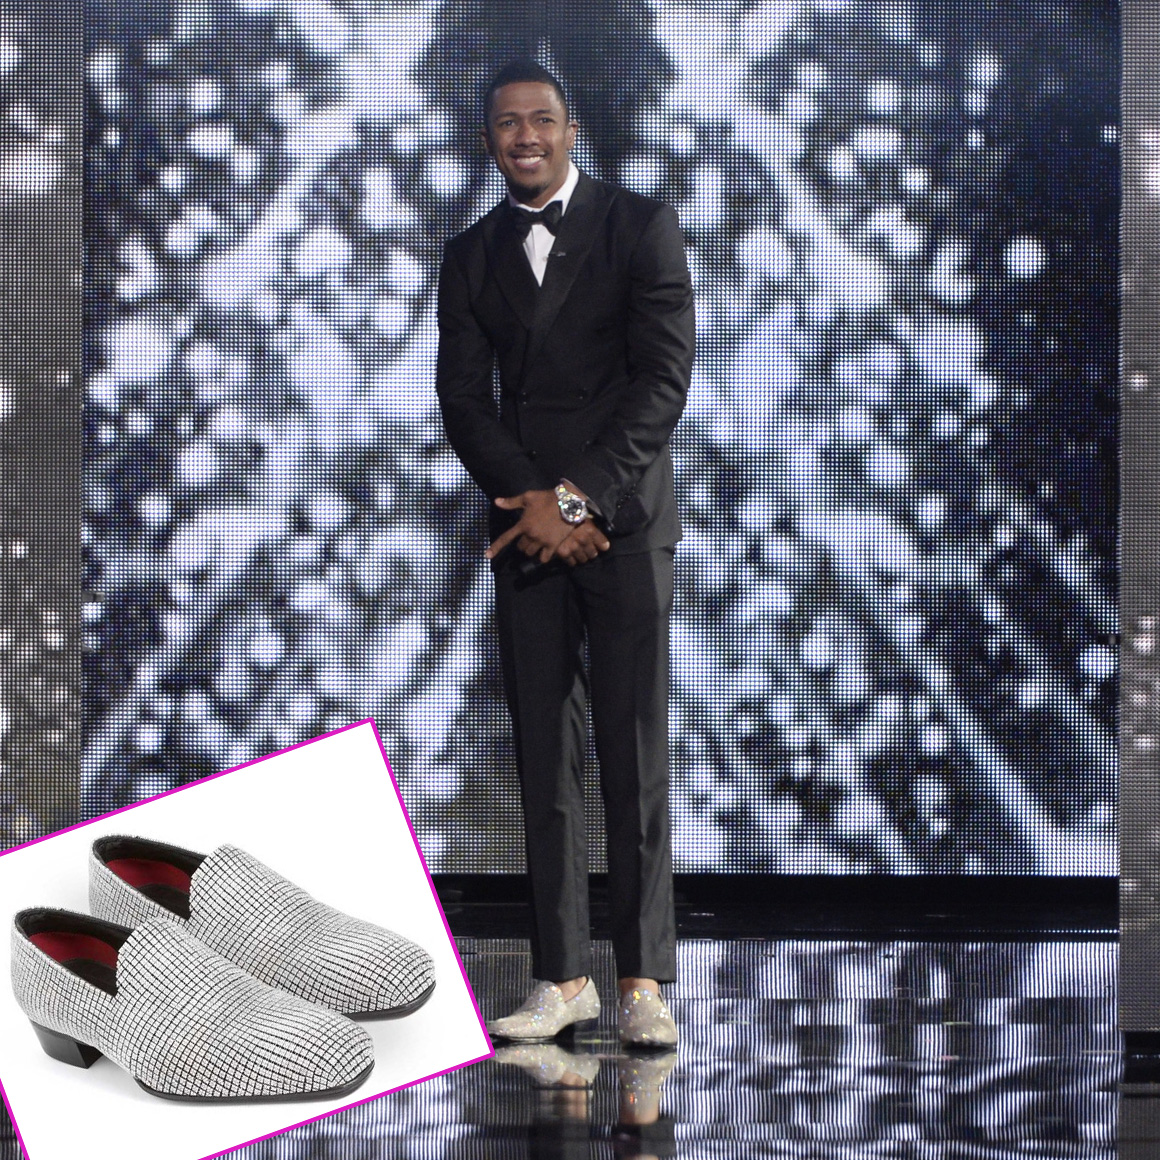 Encrusted diamond shoes nick cannon